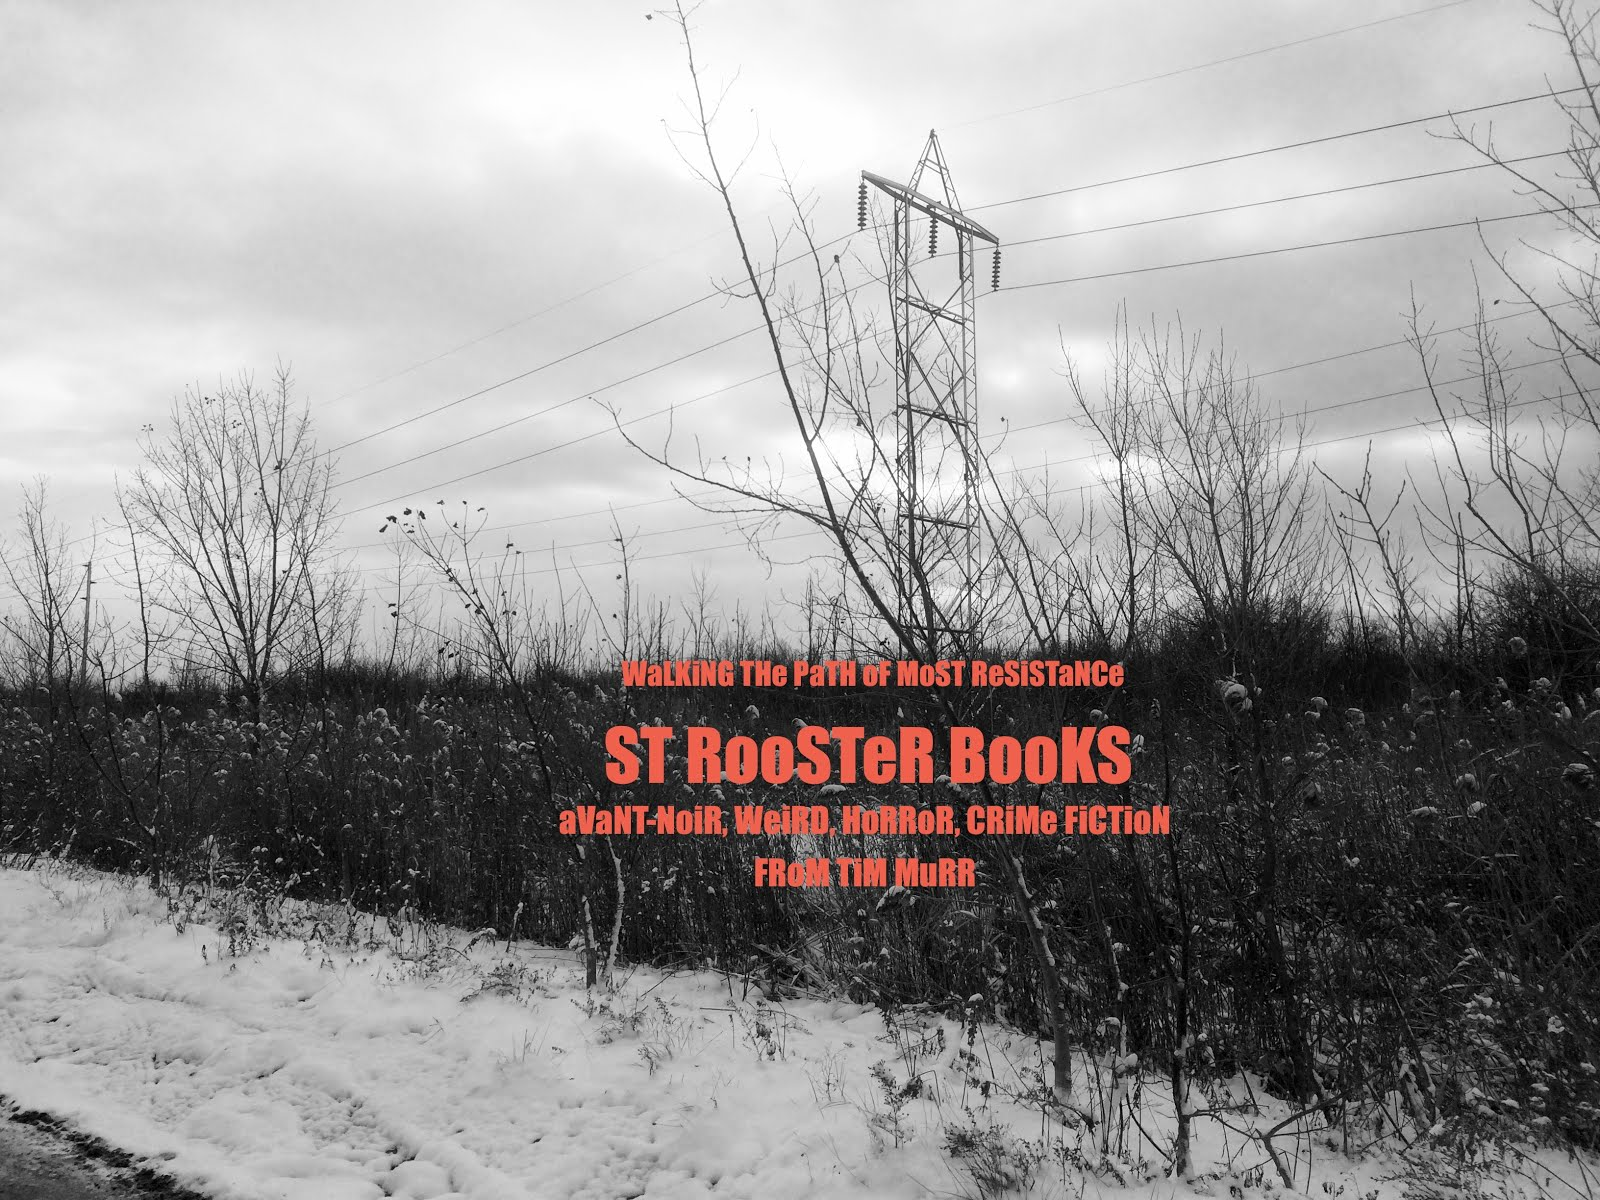 From St Rooster Books